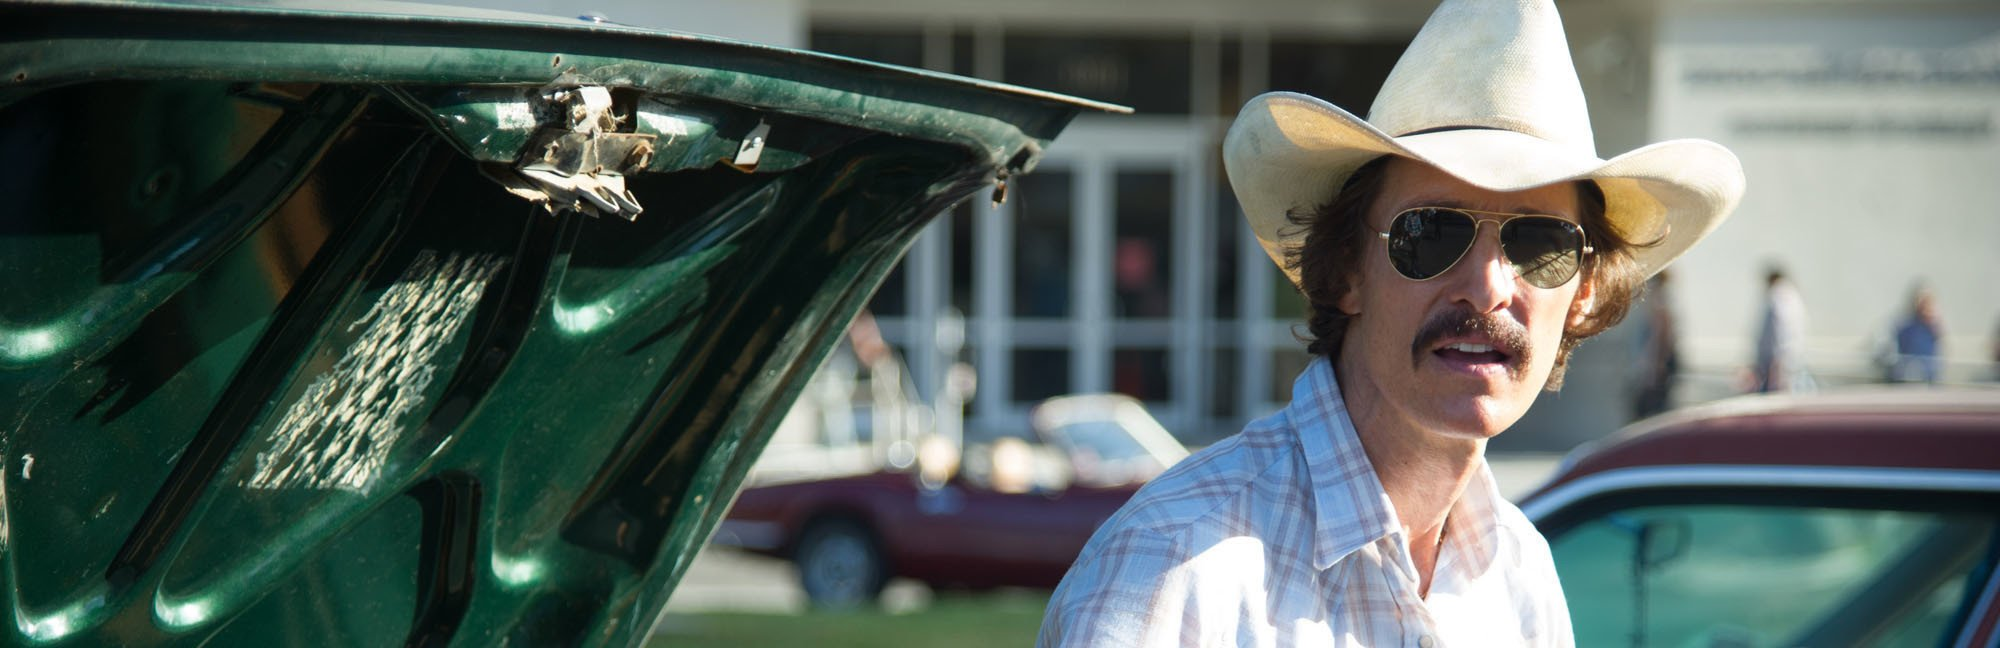 Film: Dallas Buyers Club feature image